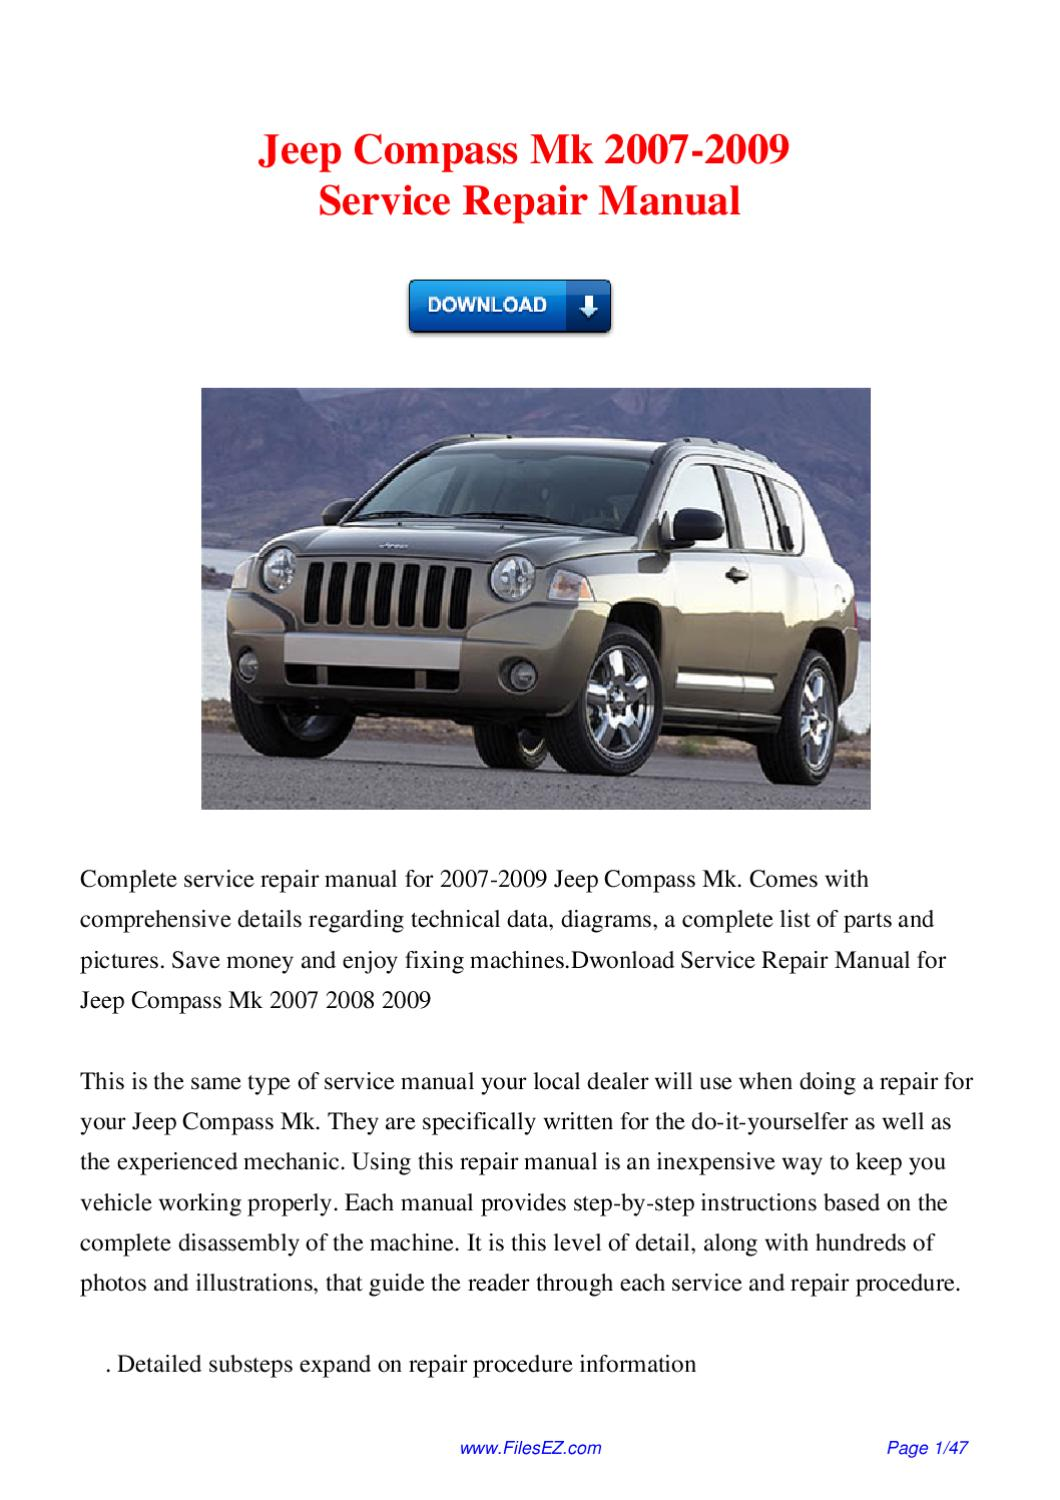 jeep compass mk 2007 2009 service repair manual by david. Black Bedroom Furniture Sets. Home Design Ideas